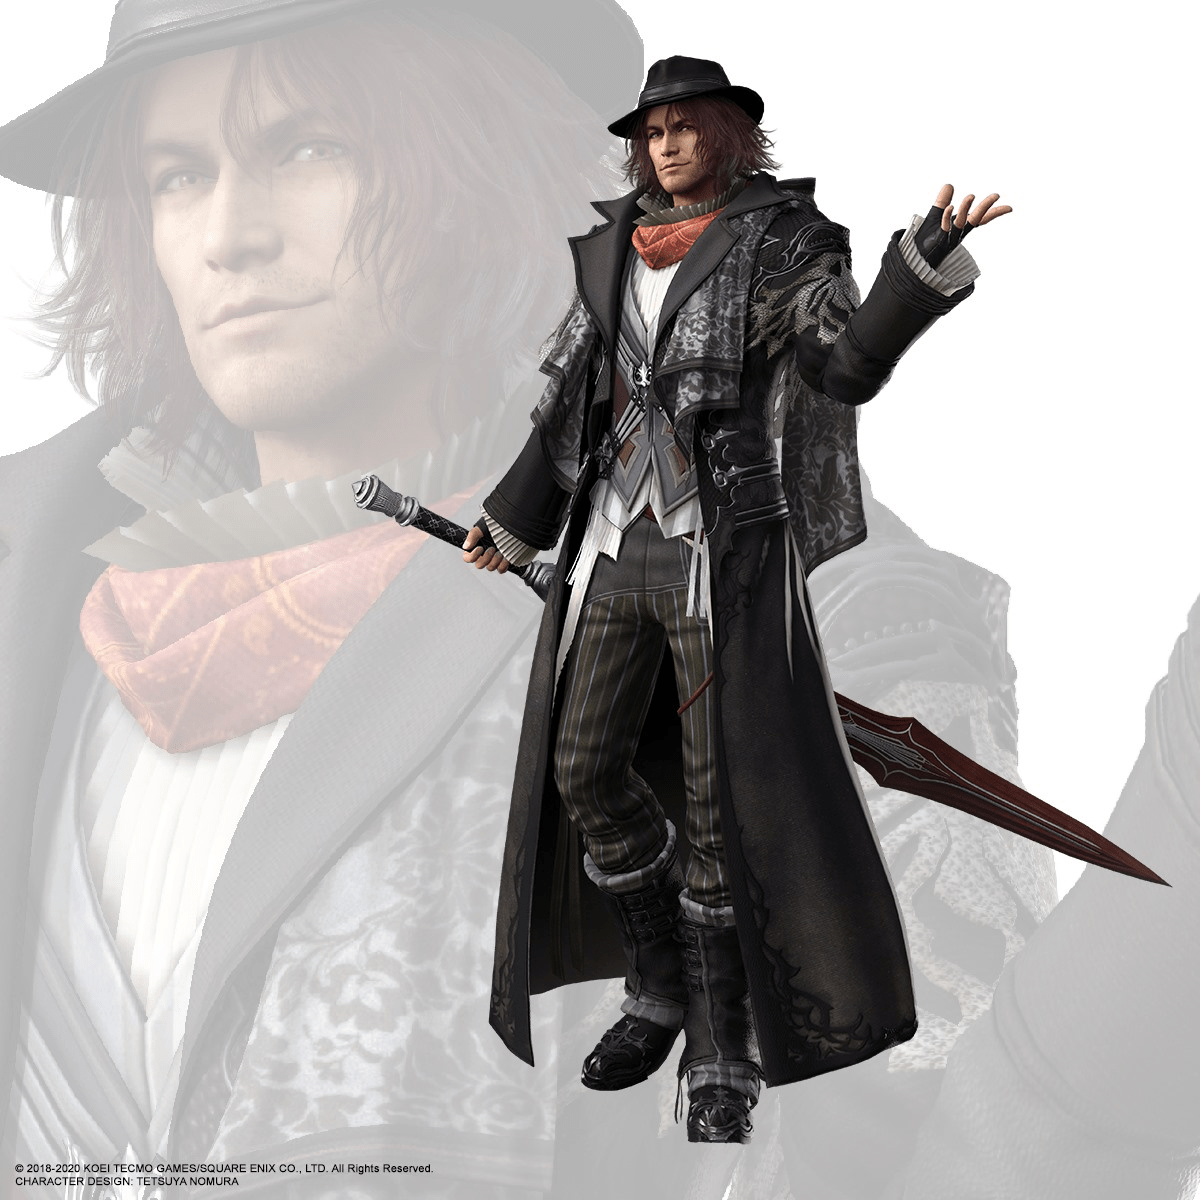 Ardyn Izunia (FFXV) in Dissidia: Final Fantasy NT